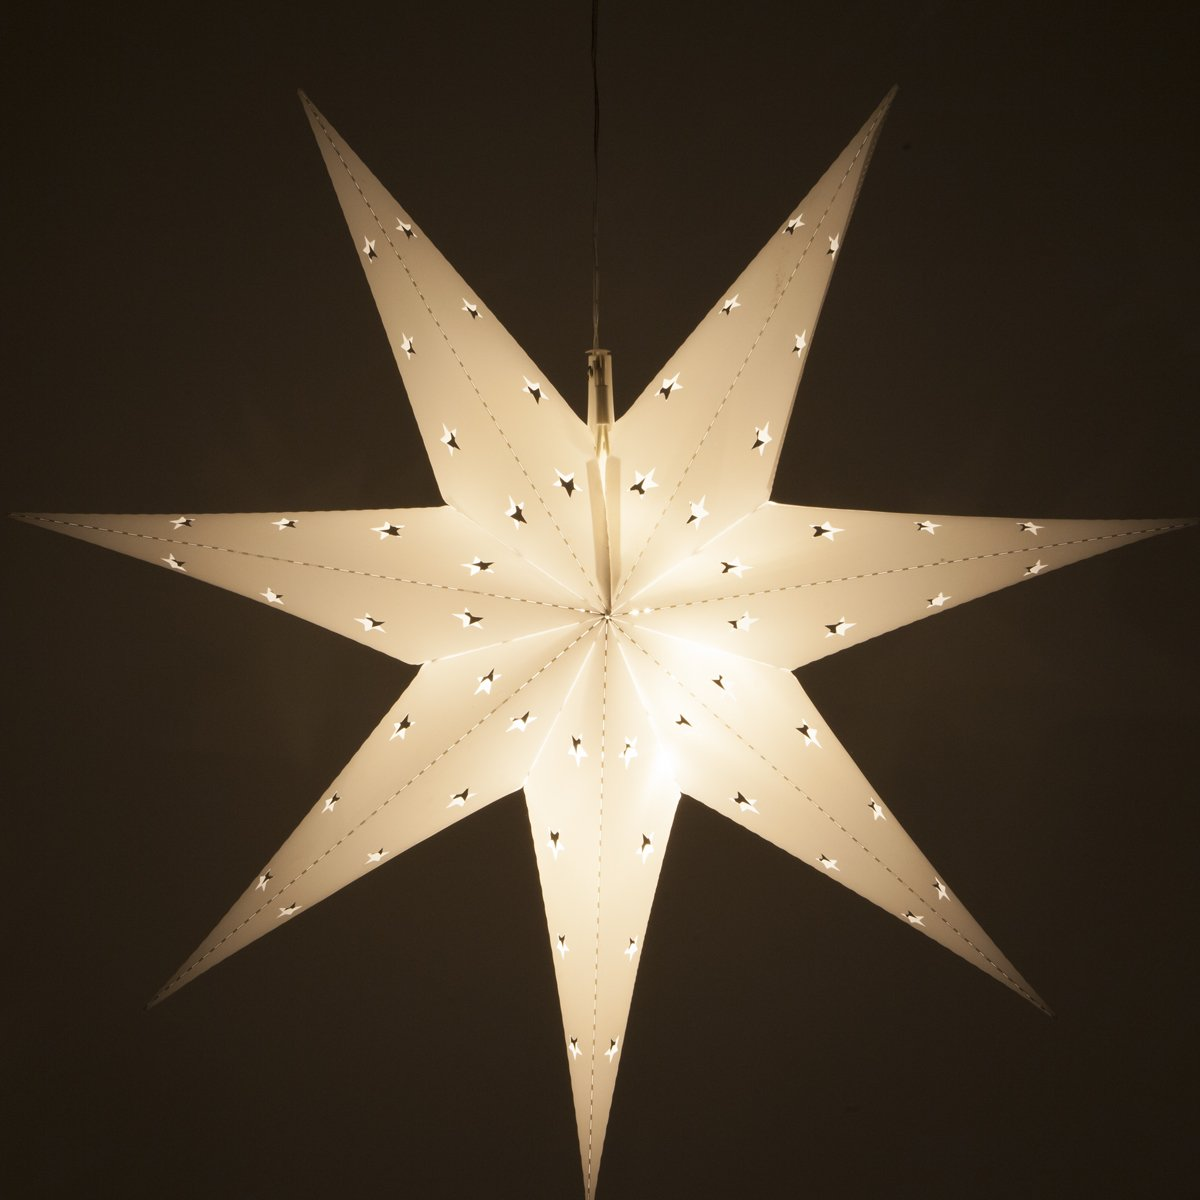 Wintergreen Lighting Fold-Flat 7-Point Star Light – Hanging Star – Christmas Star Light Decoration/Battery-Powered with Timer (24'', White)